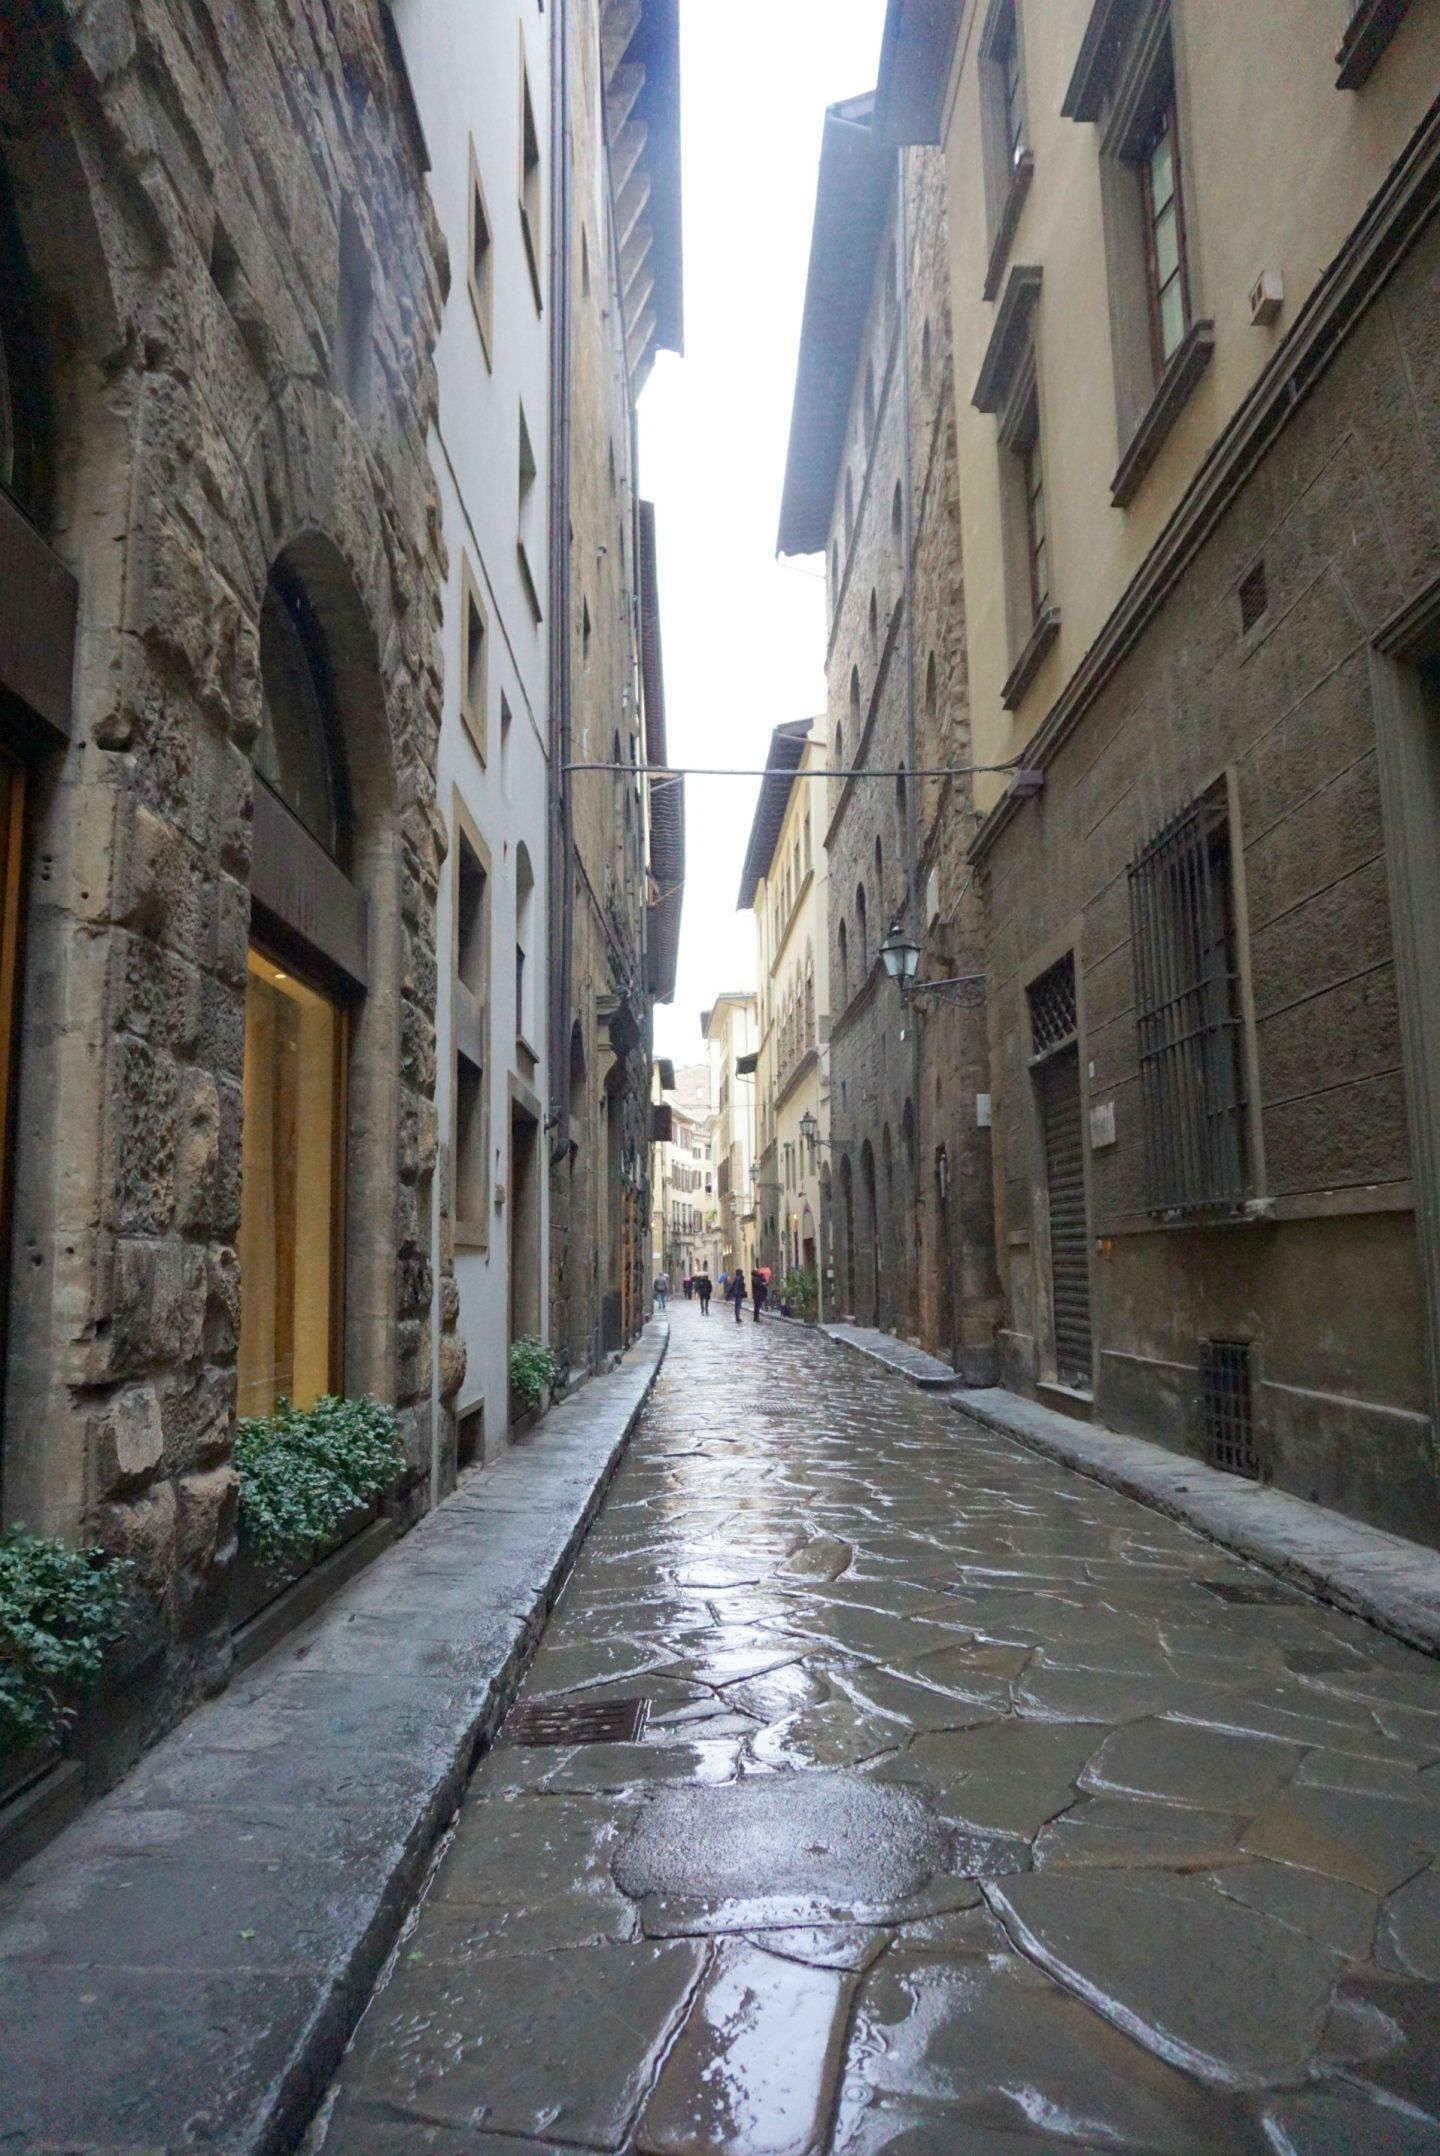 Tuscany Backstreets in the rain www.extraordinarychaos.com